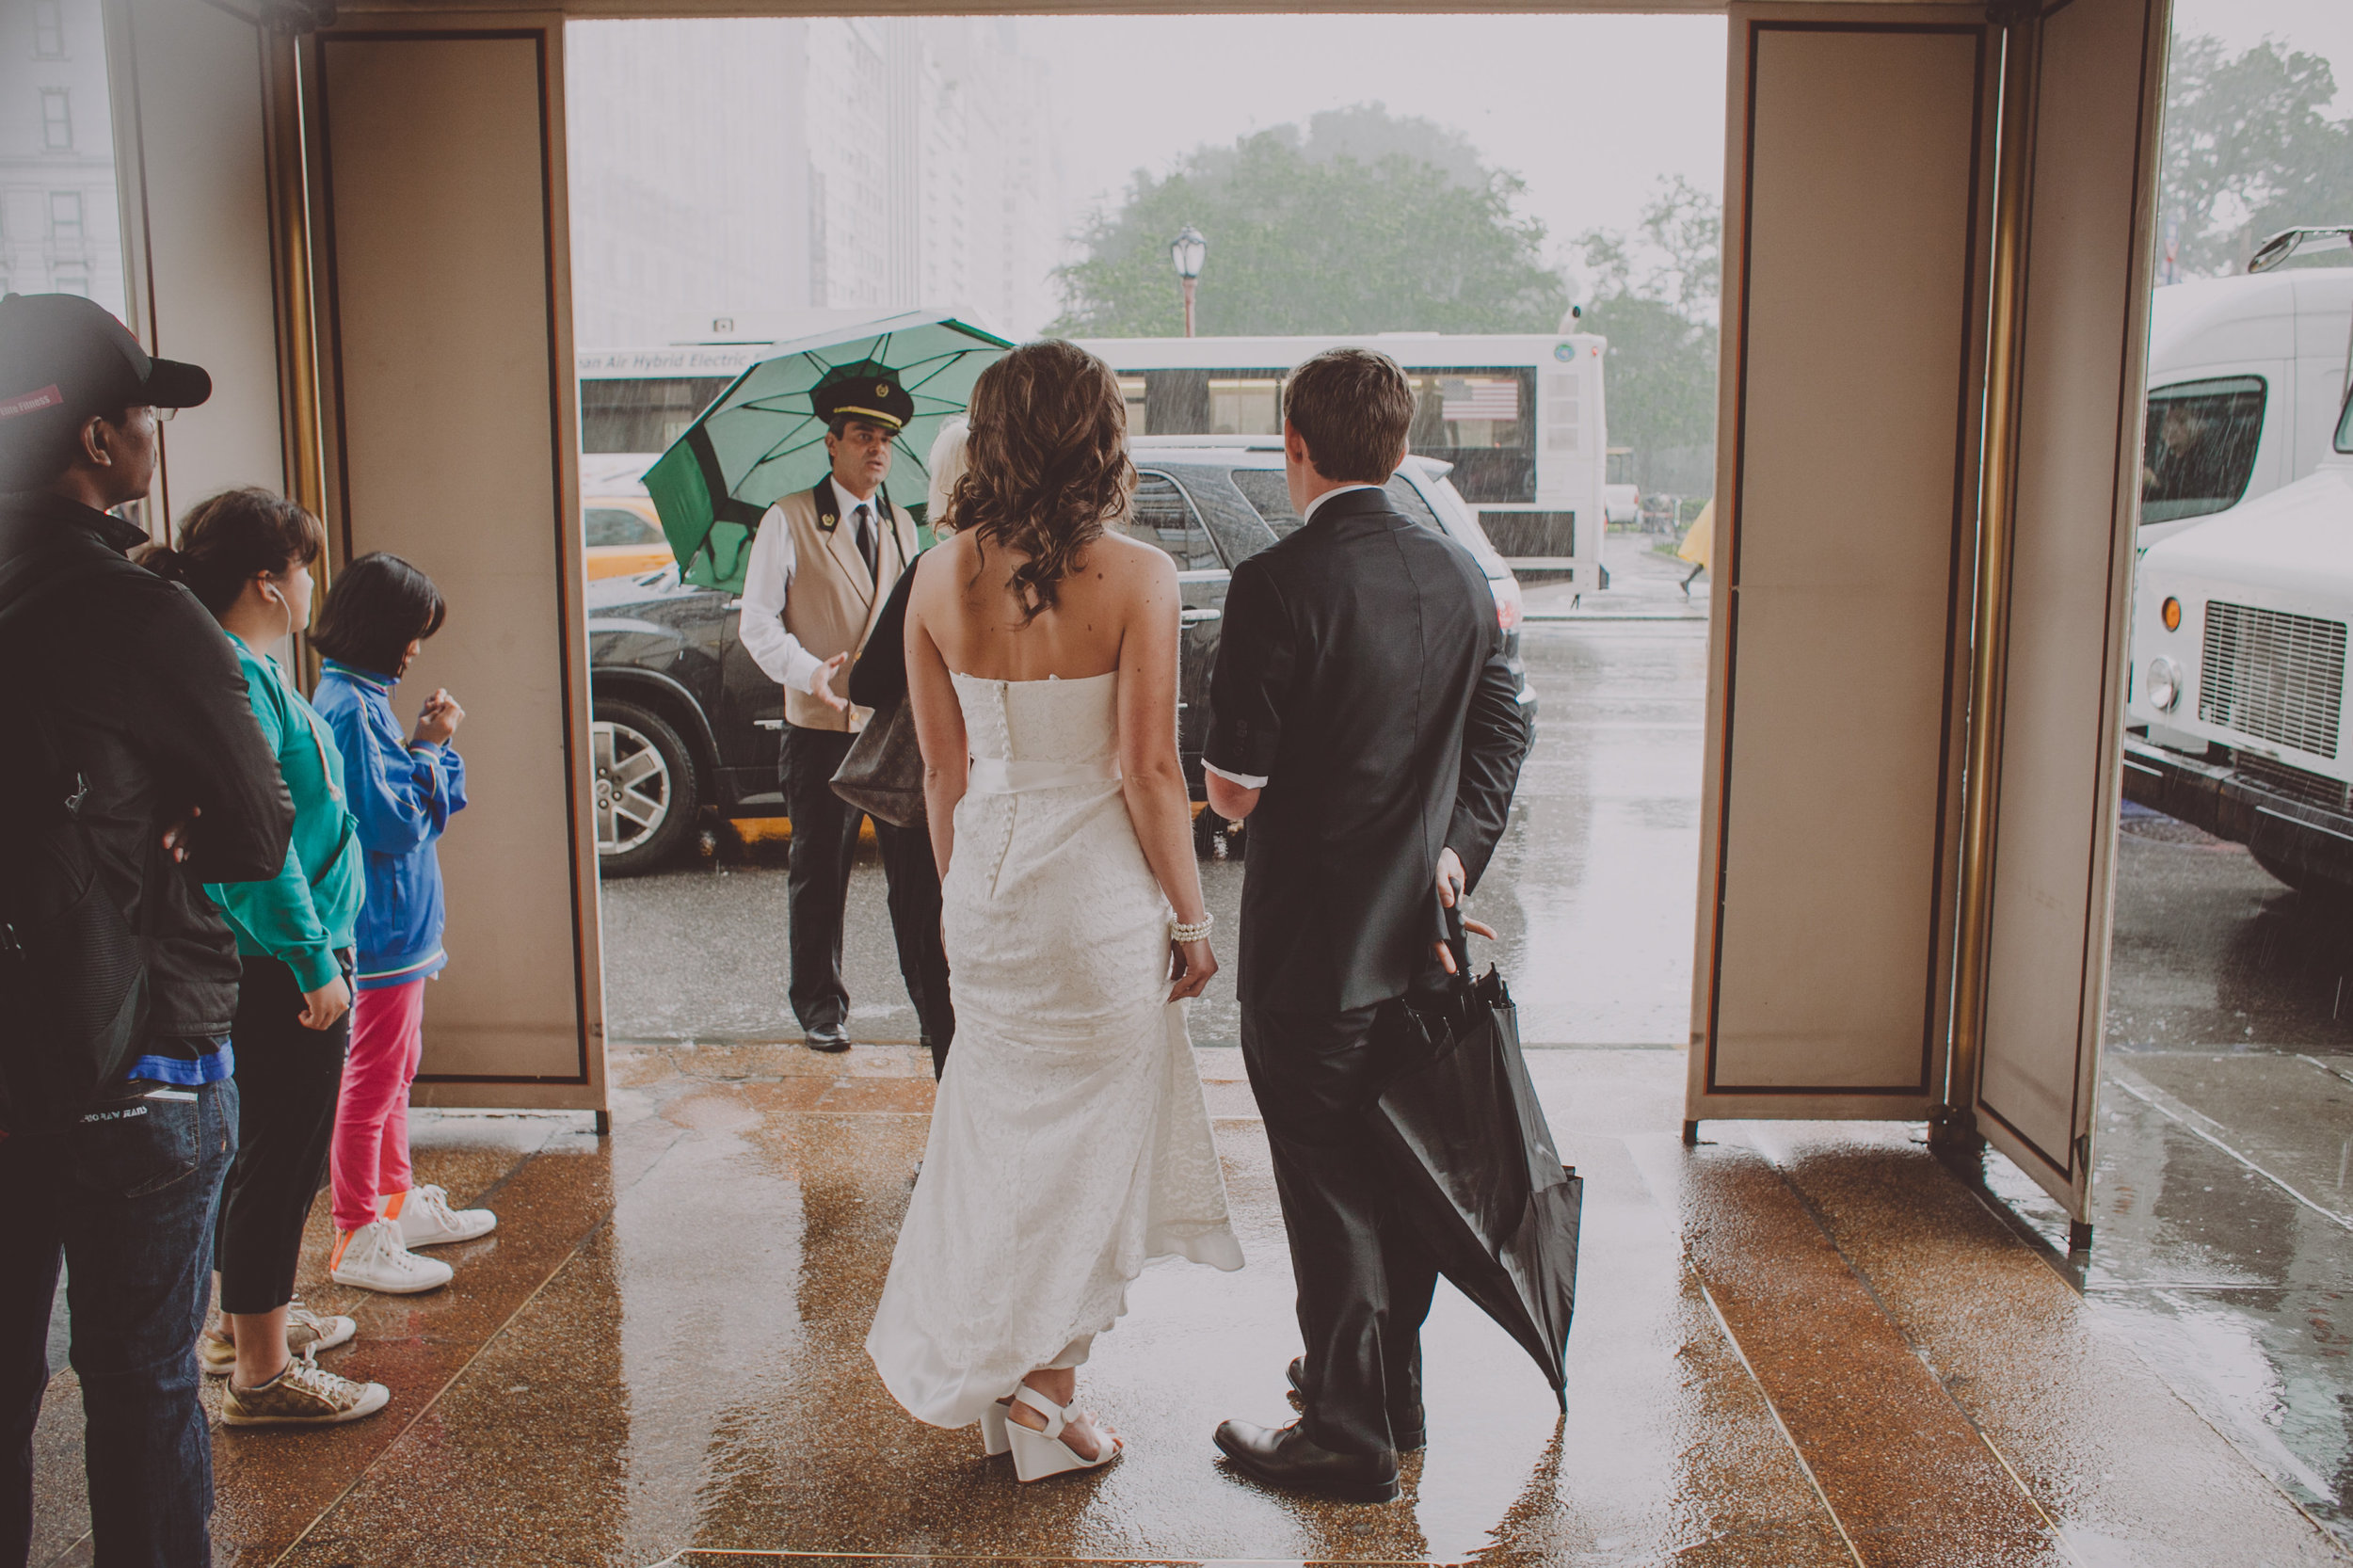 Central_Park_Rainy_Wedding_NYC_E420lopement.JPG